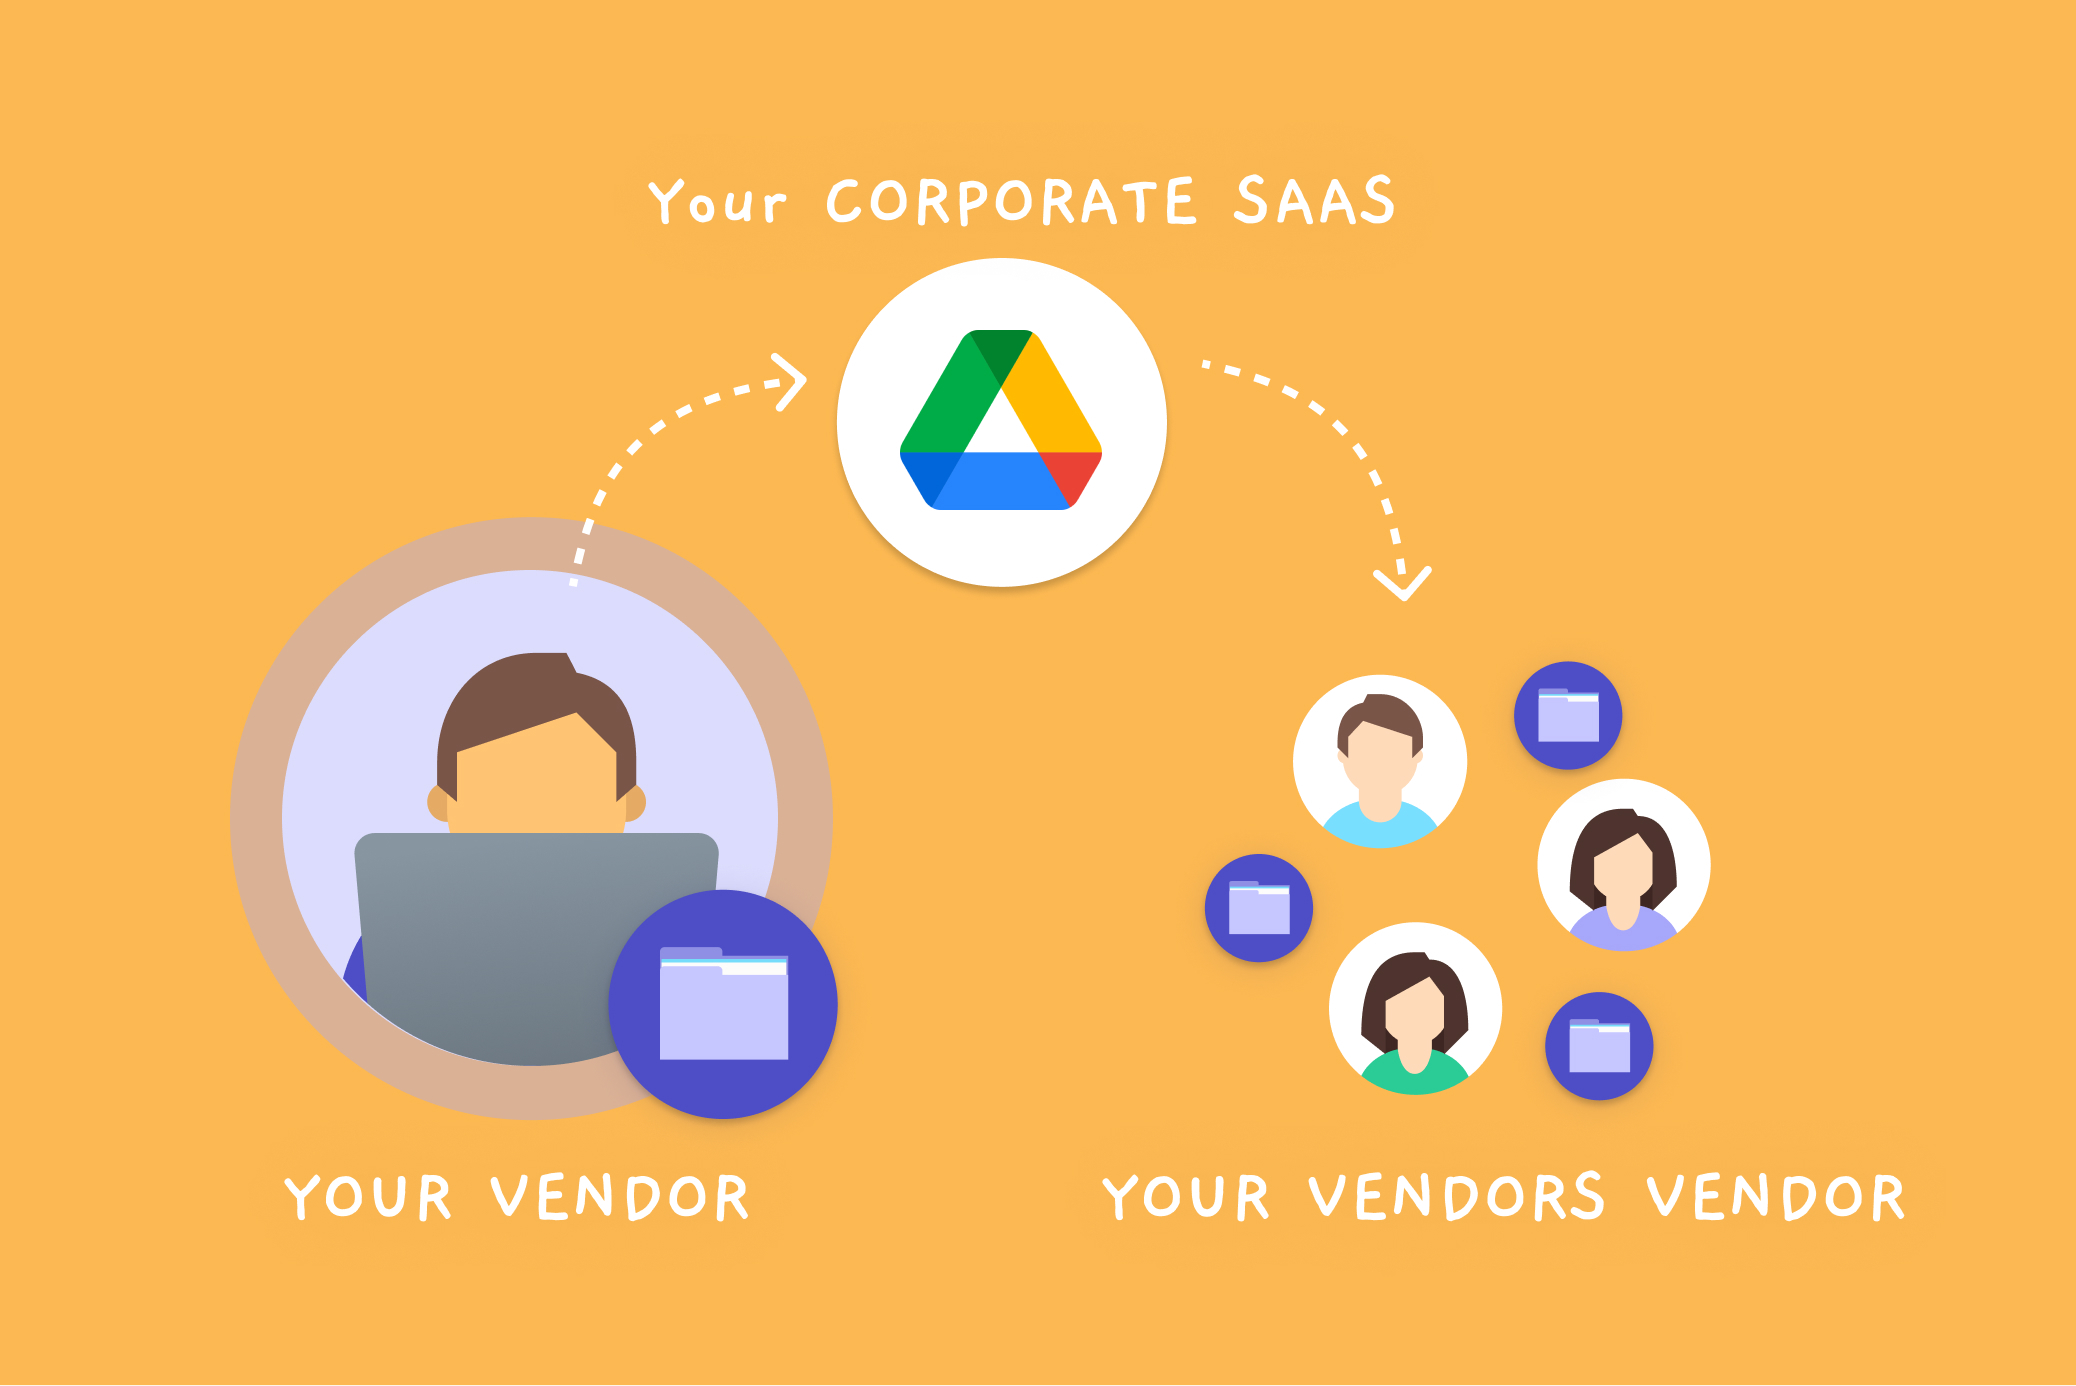 Your 3rd party collaborators share your company data with 4th parties